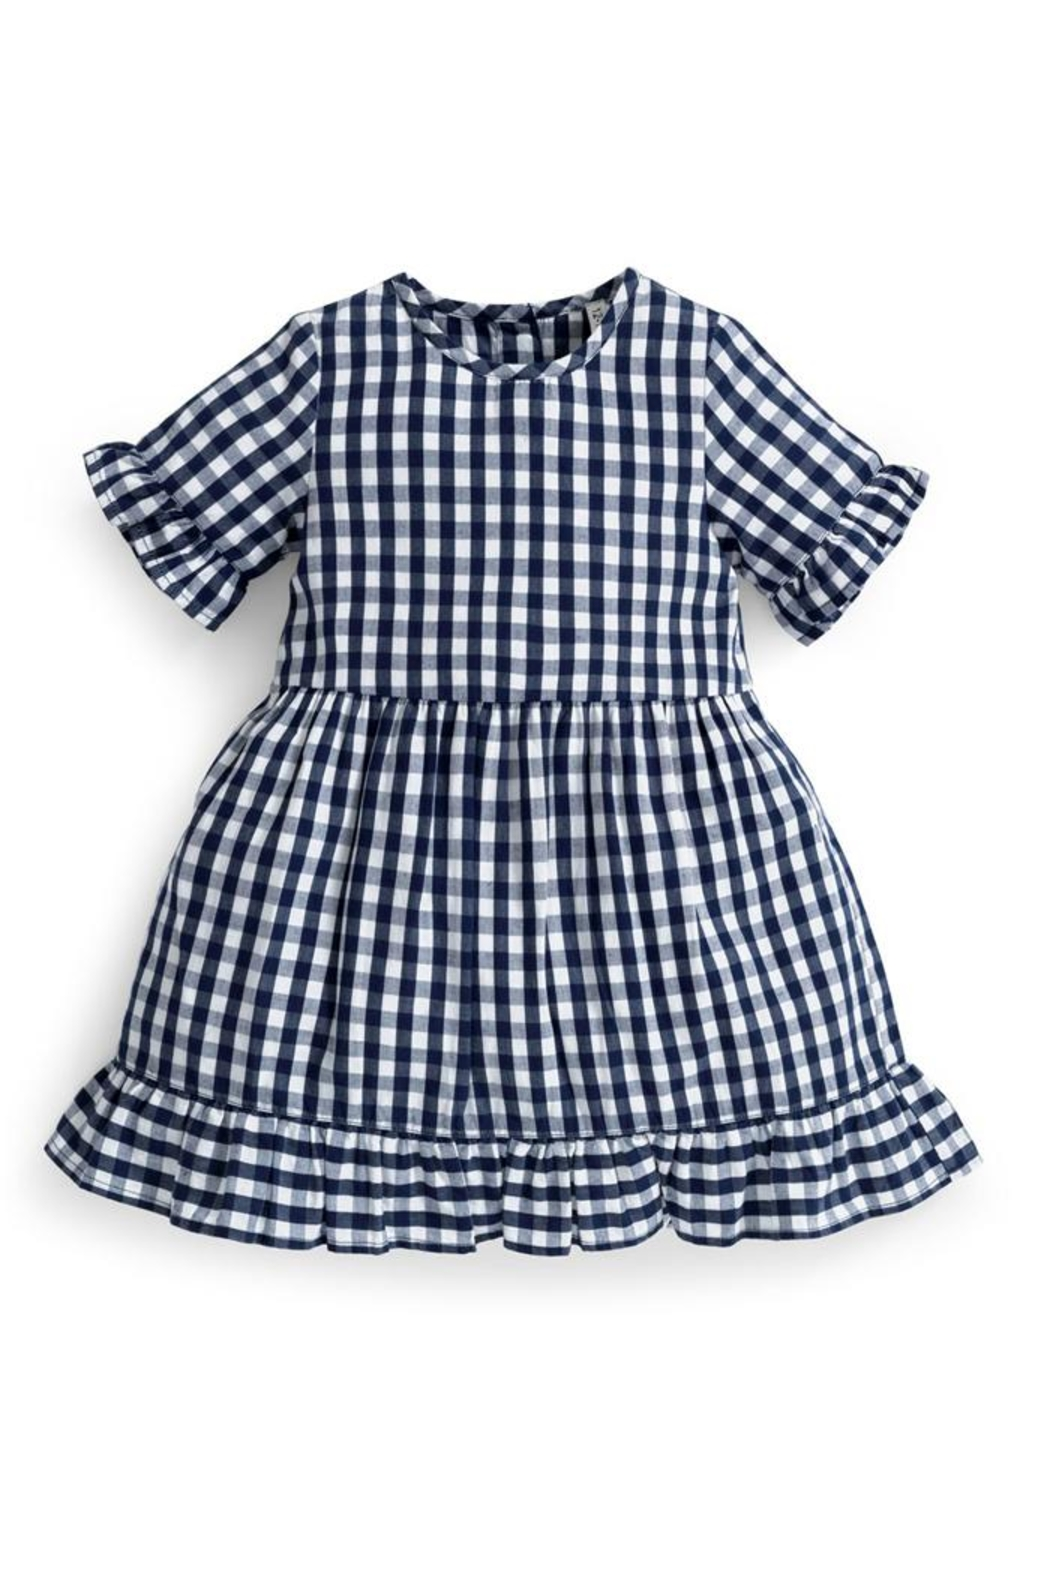 JoJo Maman Bebe Gingham Ruffle Dress - Main Image